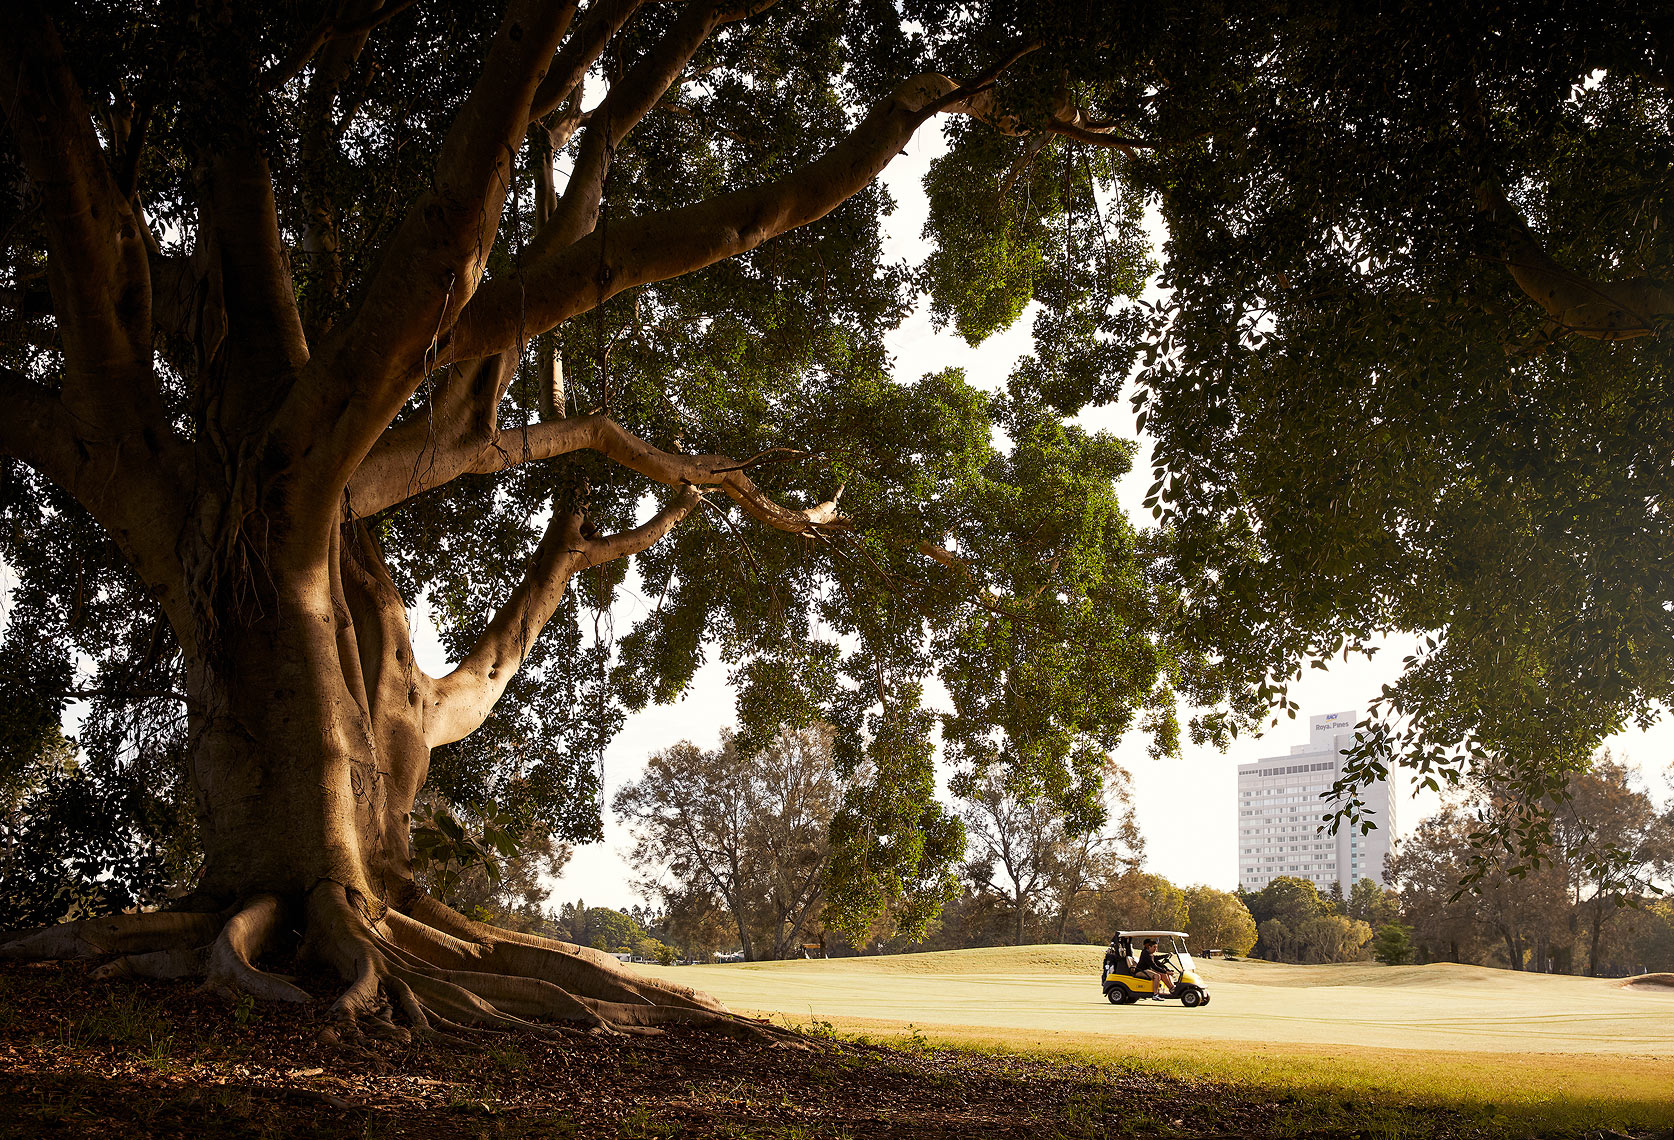 RACV_GoldCoast_Day3_01_Golf_542_A4